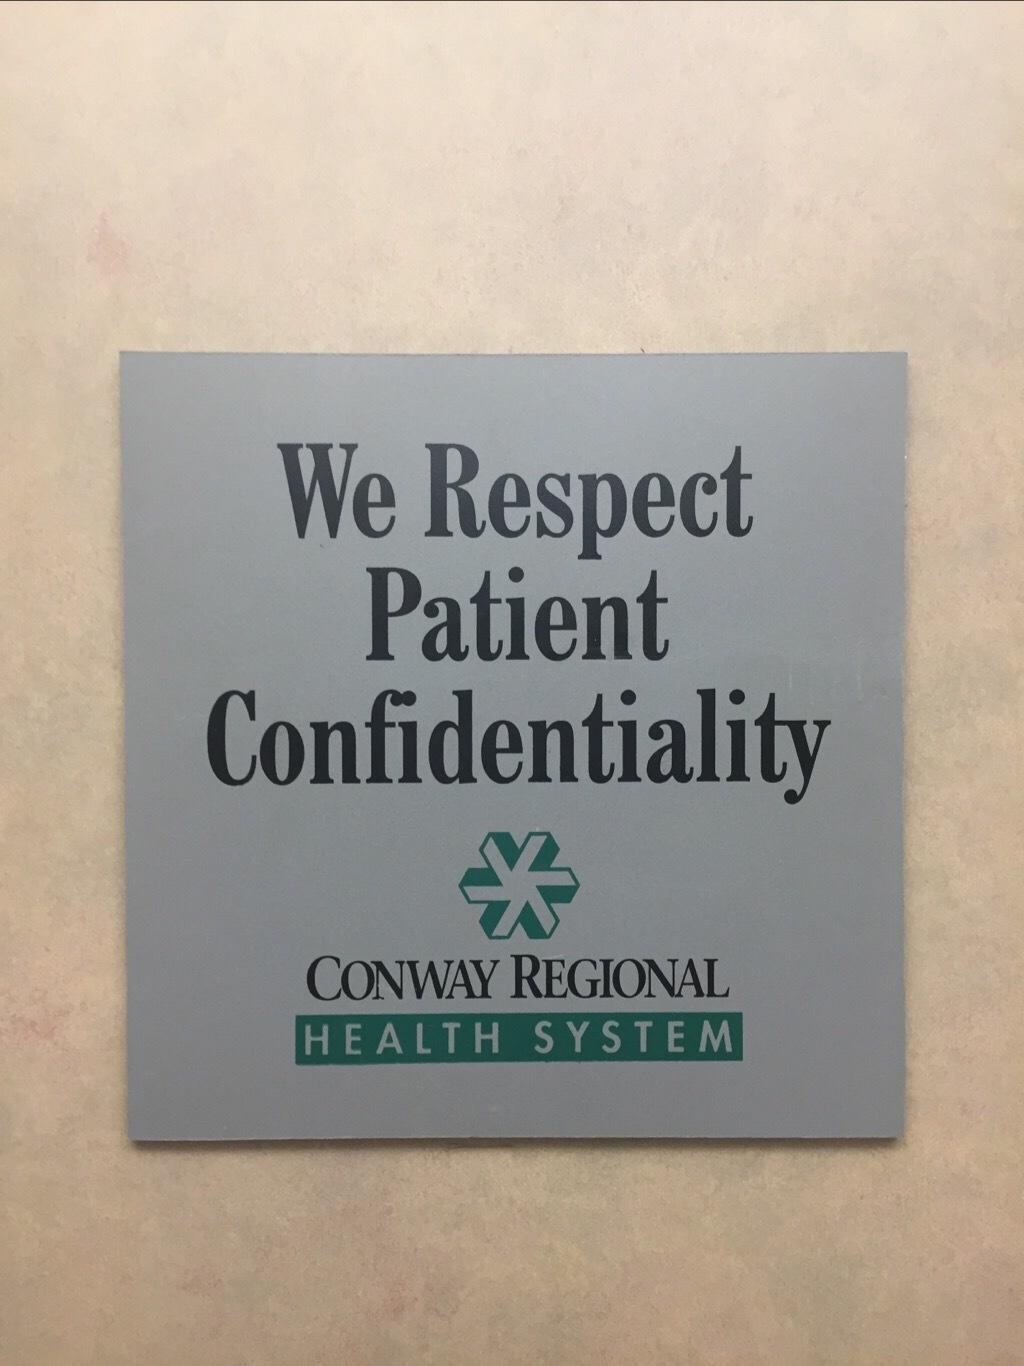 center conway hindu single women White mountain community health center in conway nh provides comprehensive, high-quality primary care services and health education on a sustainable basis to women, men and children in the mount washington valley community regardless of.